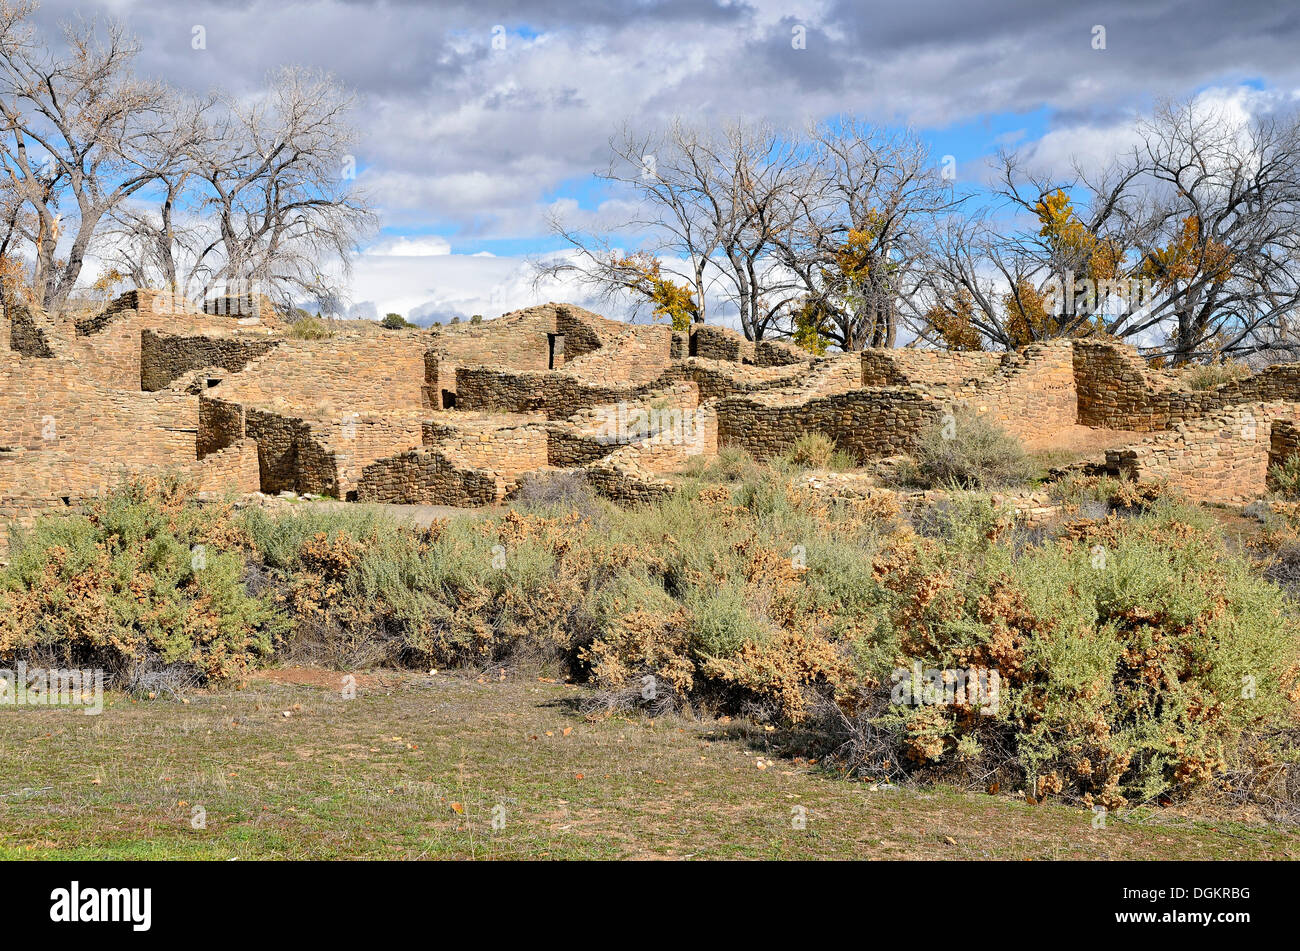 Ruins of the historic Anasazi settlement, partial view, Aztec Ruins National Monument, Aztec, New Mexico, USA - Stock Image